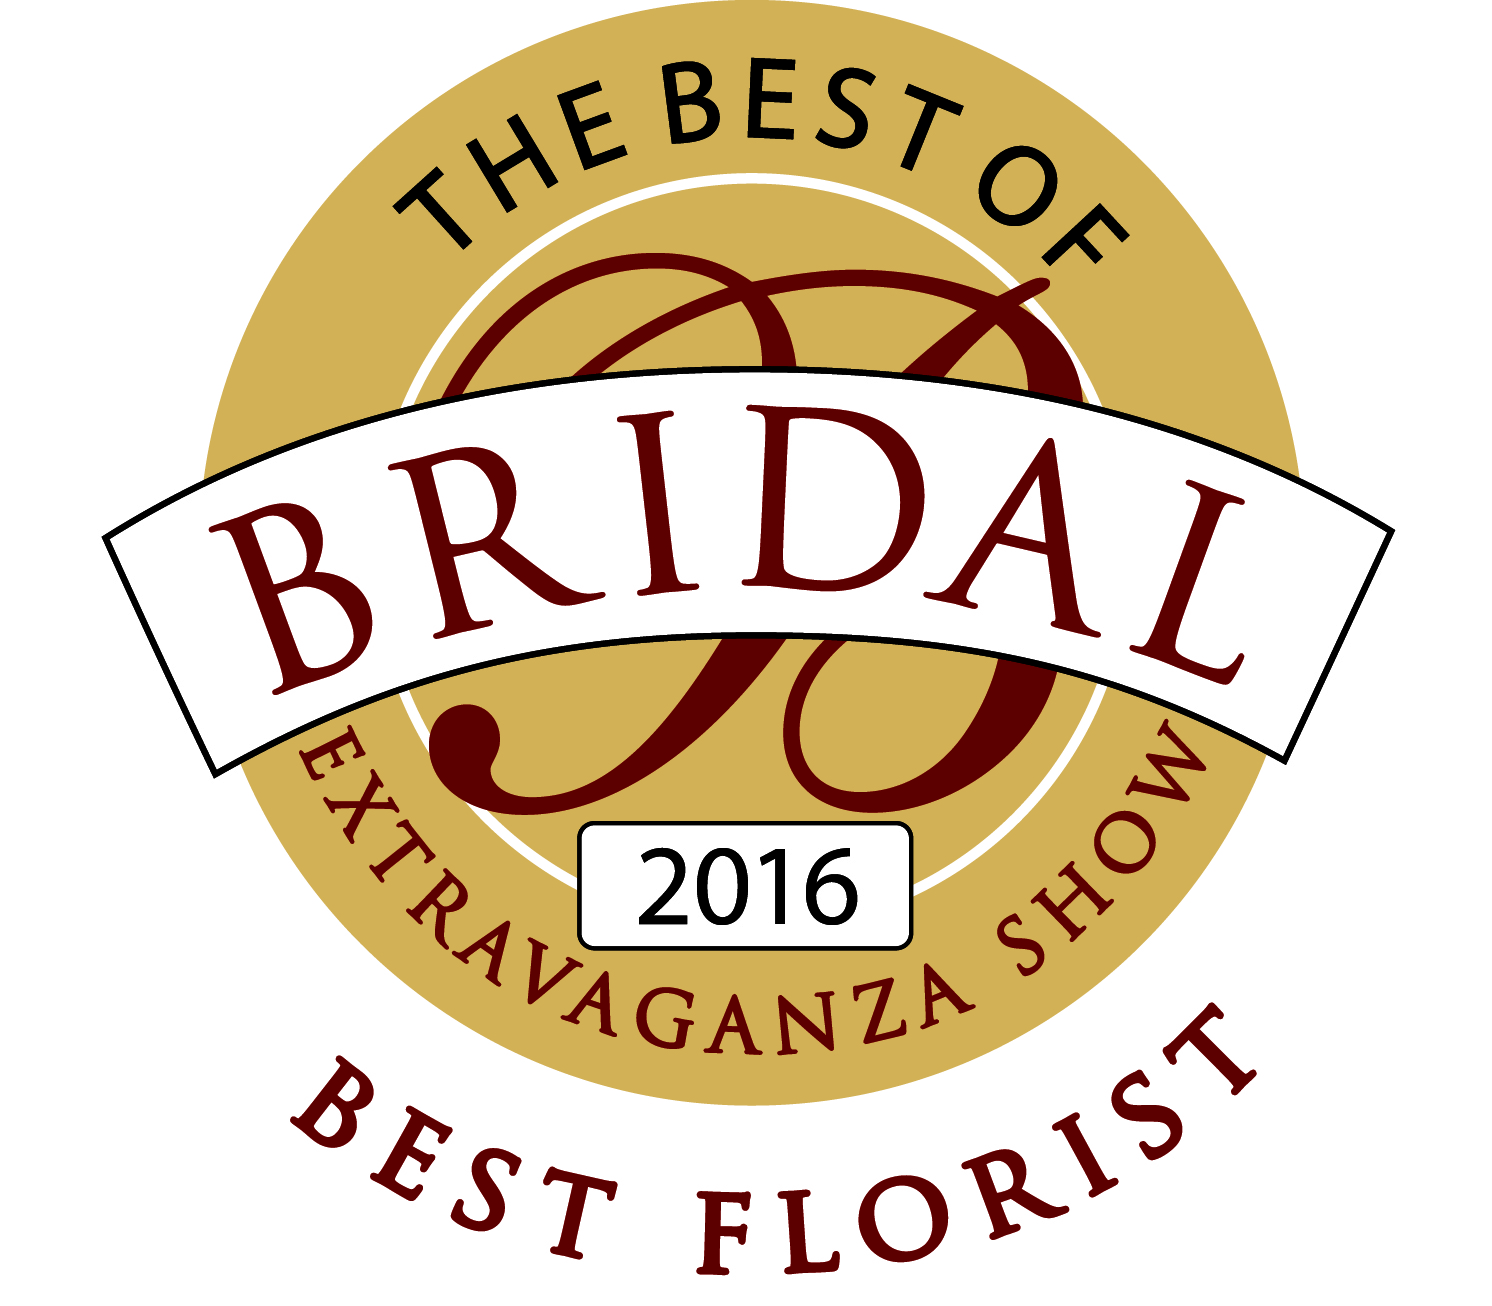 Dream Bouquet - Best Florist Logo - Bridal Extravaganza 2016